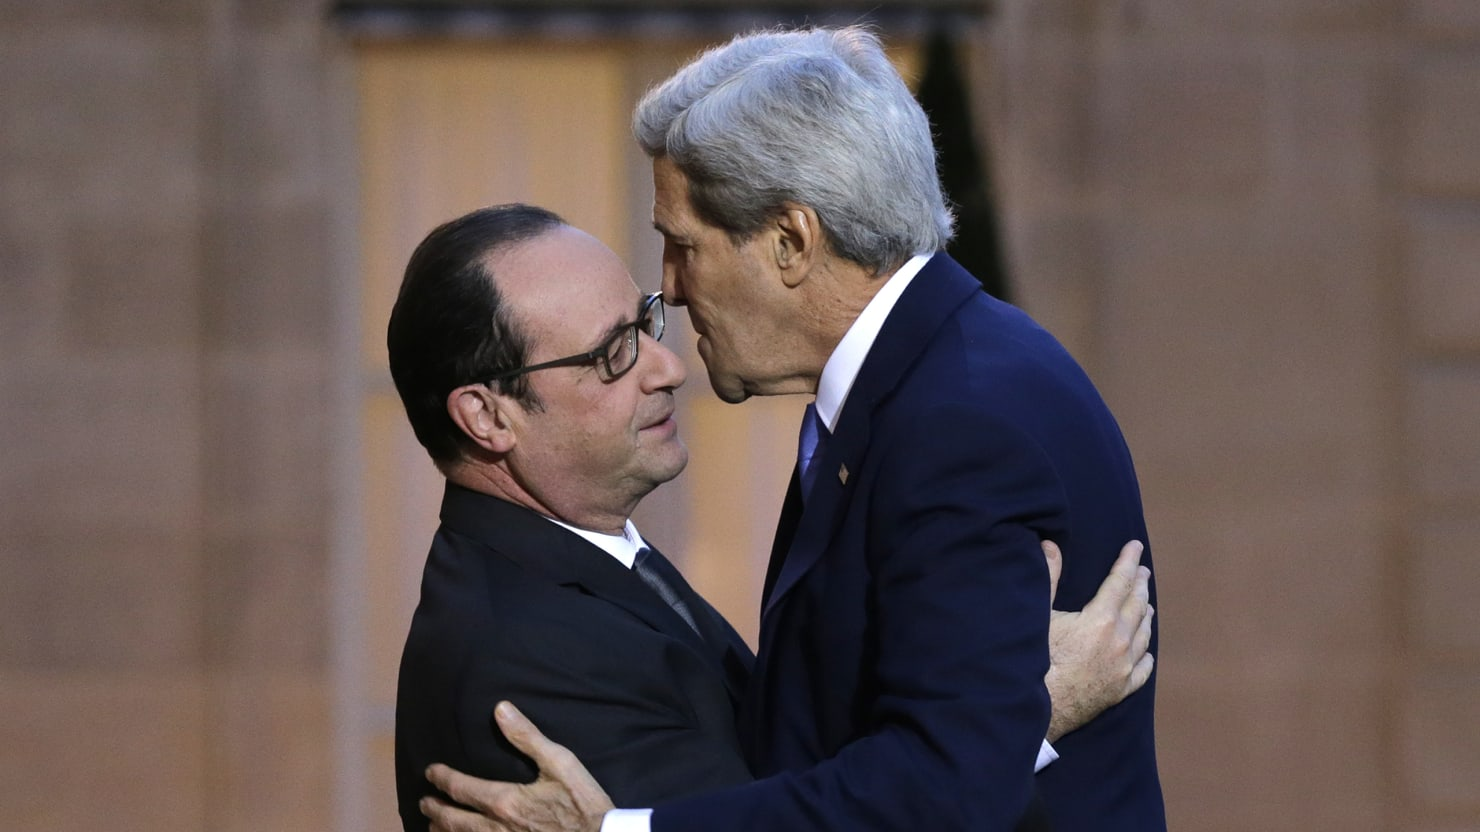 Just Kiss Already John Kerry And Franois Hollandes Intimacy Issues